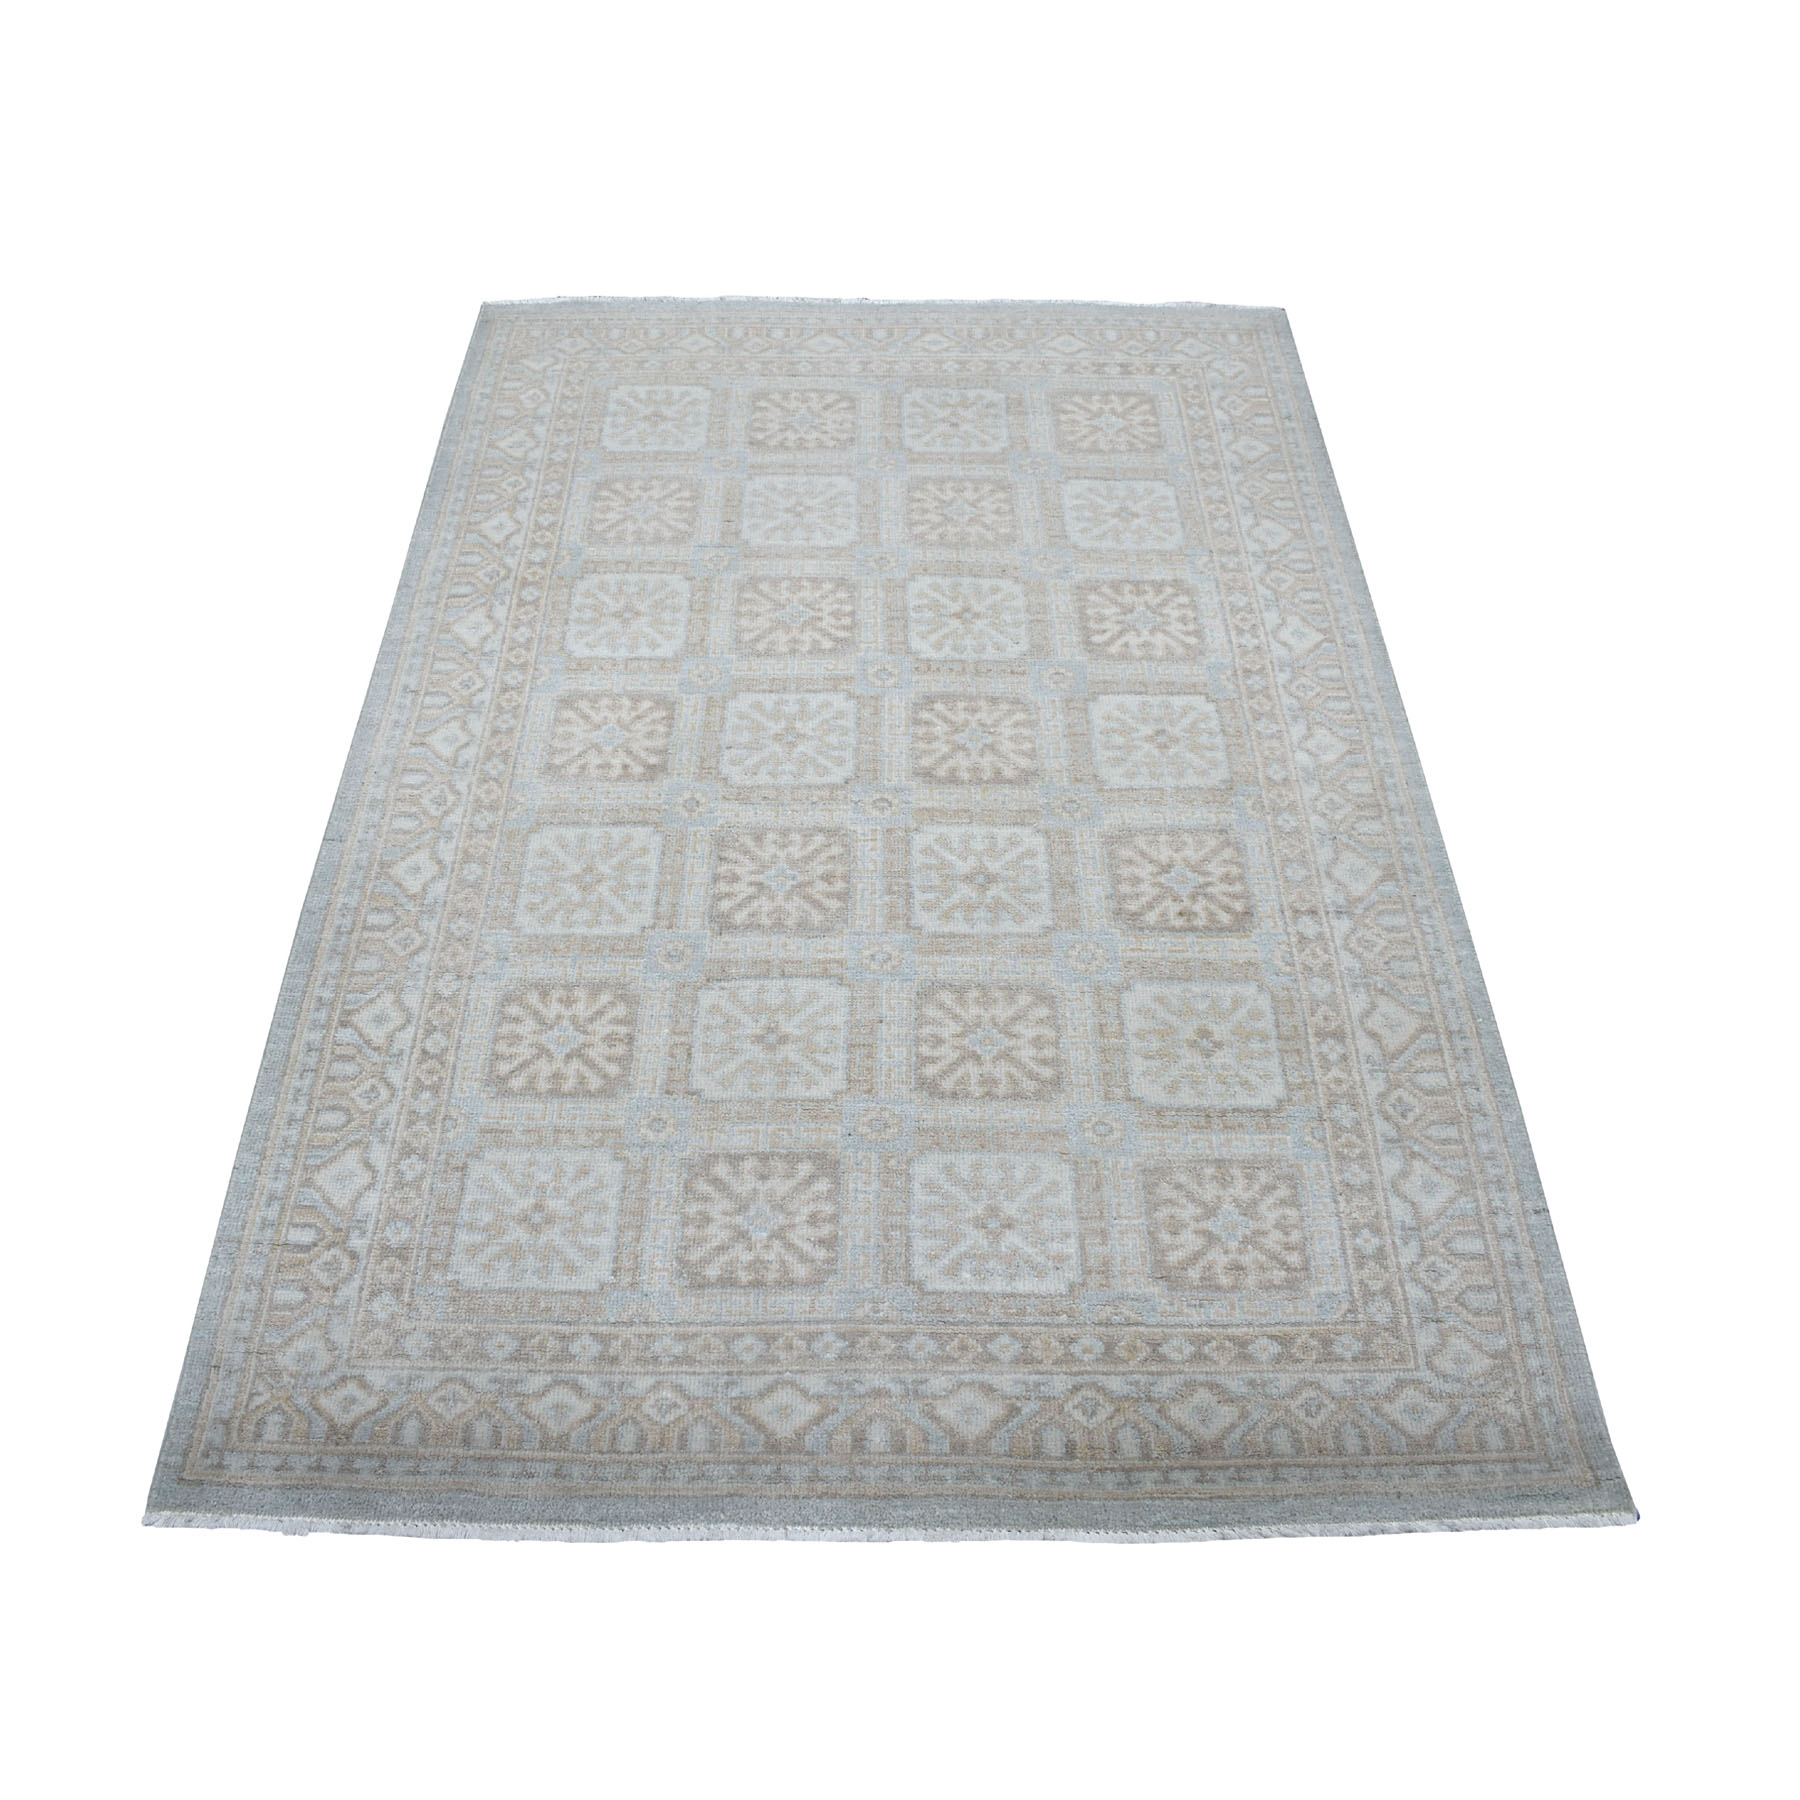 "4'1""X6'1"" White Wash Peshawar Mahal Design Pure Wool Hand Knotted Oriental Rug moaec9b8"